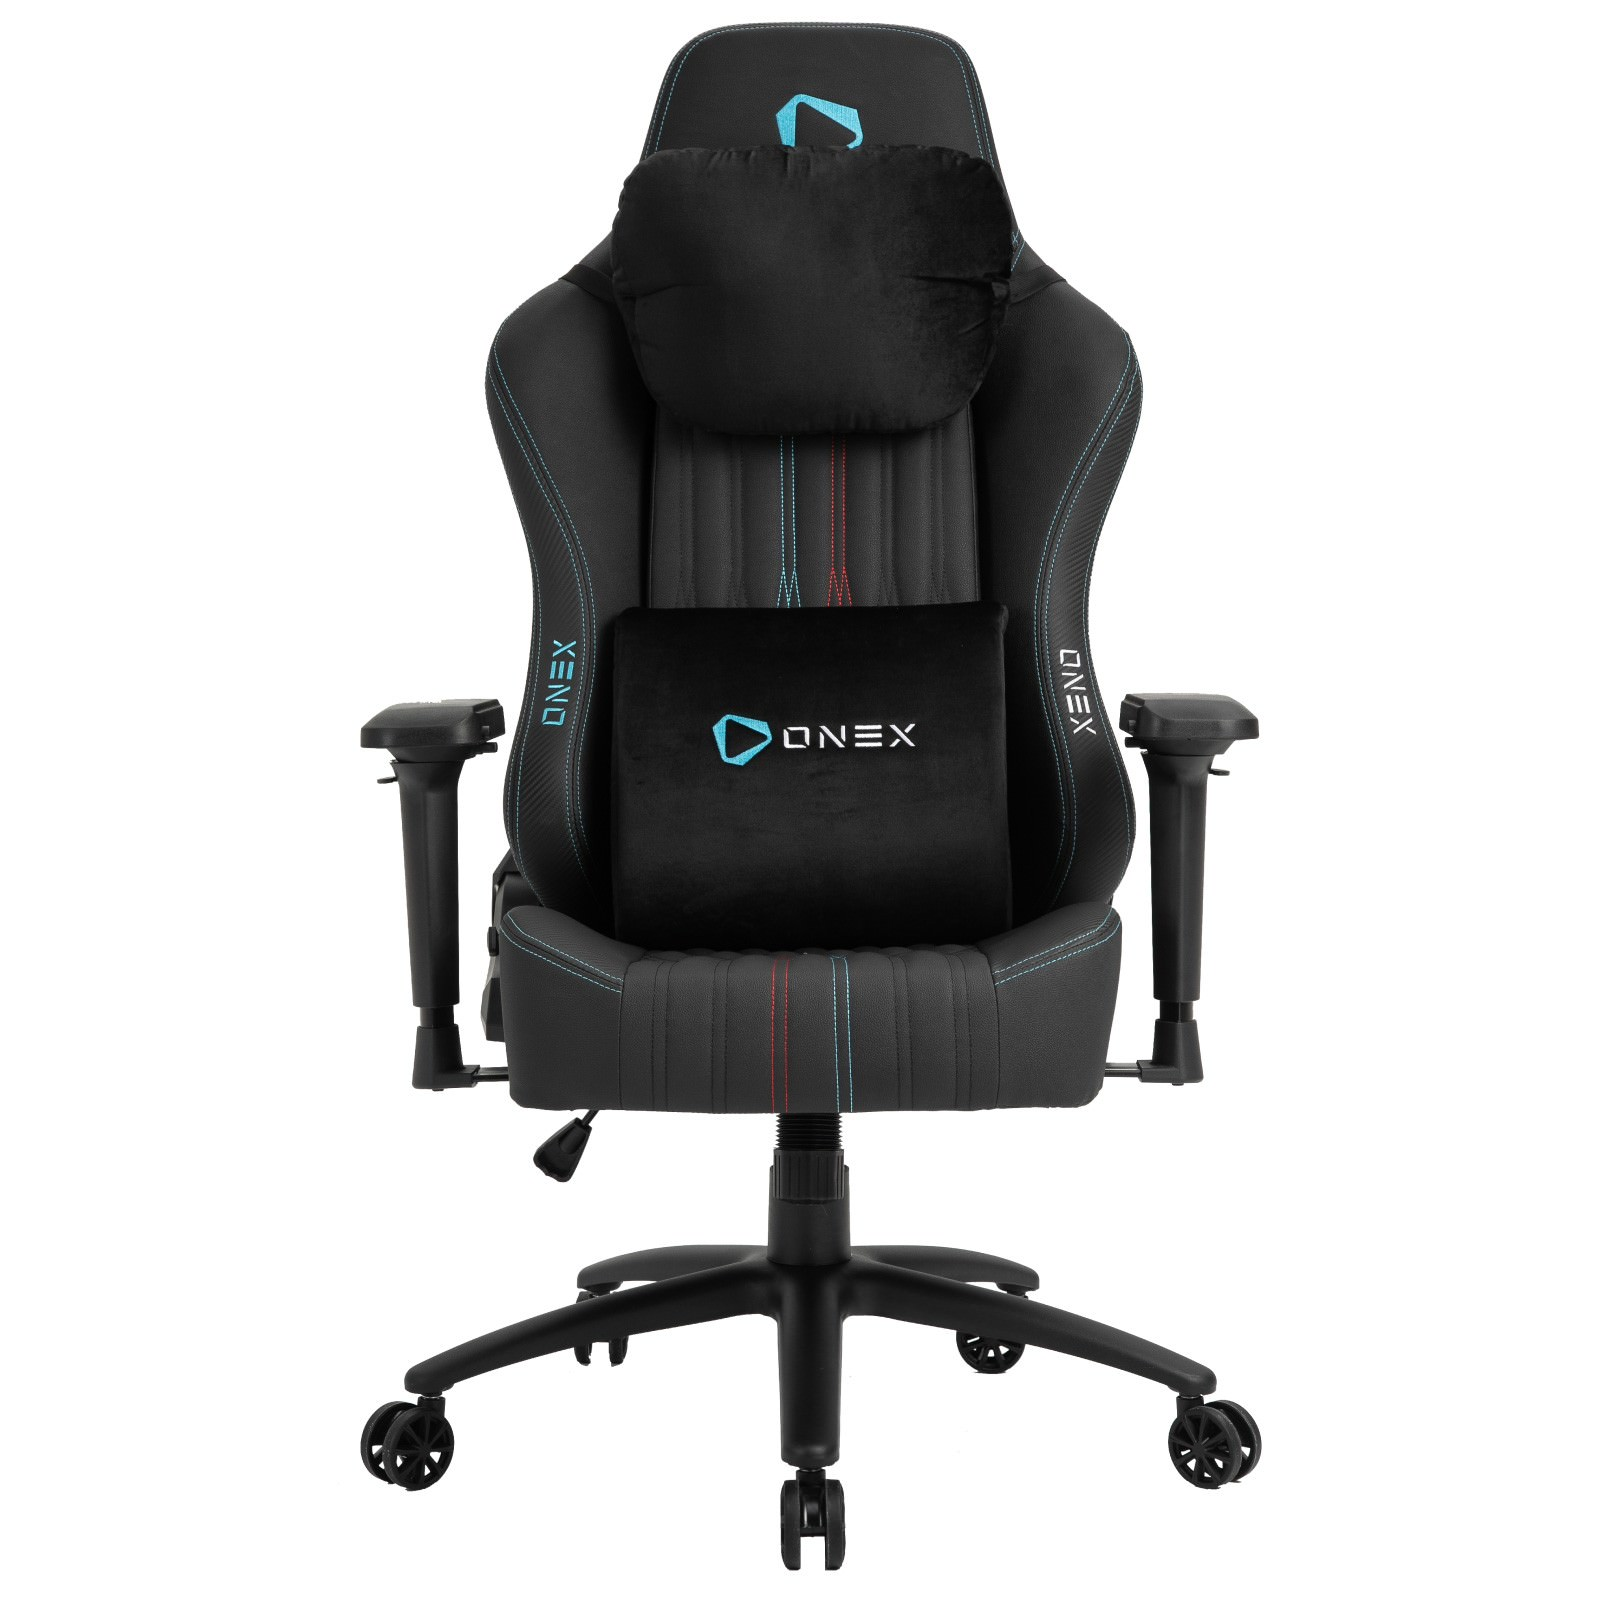 ONEX FT-700 France Tournament Special Edition Gaming Chair, Black / Blue